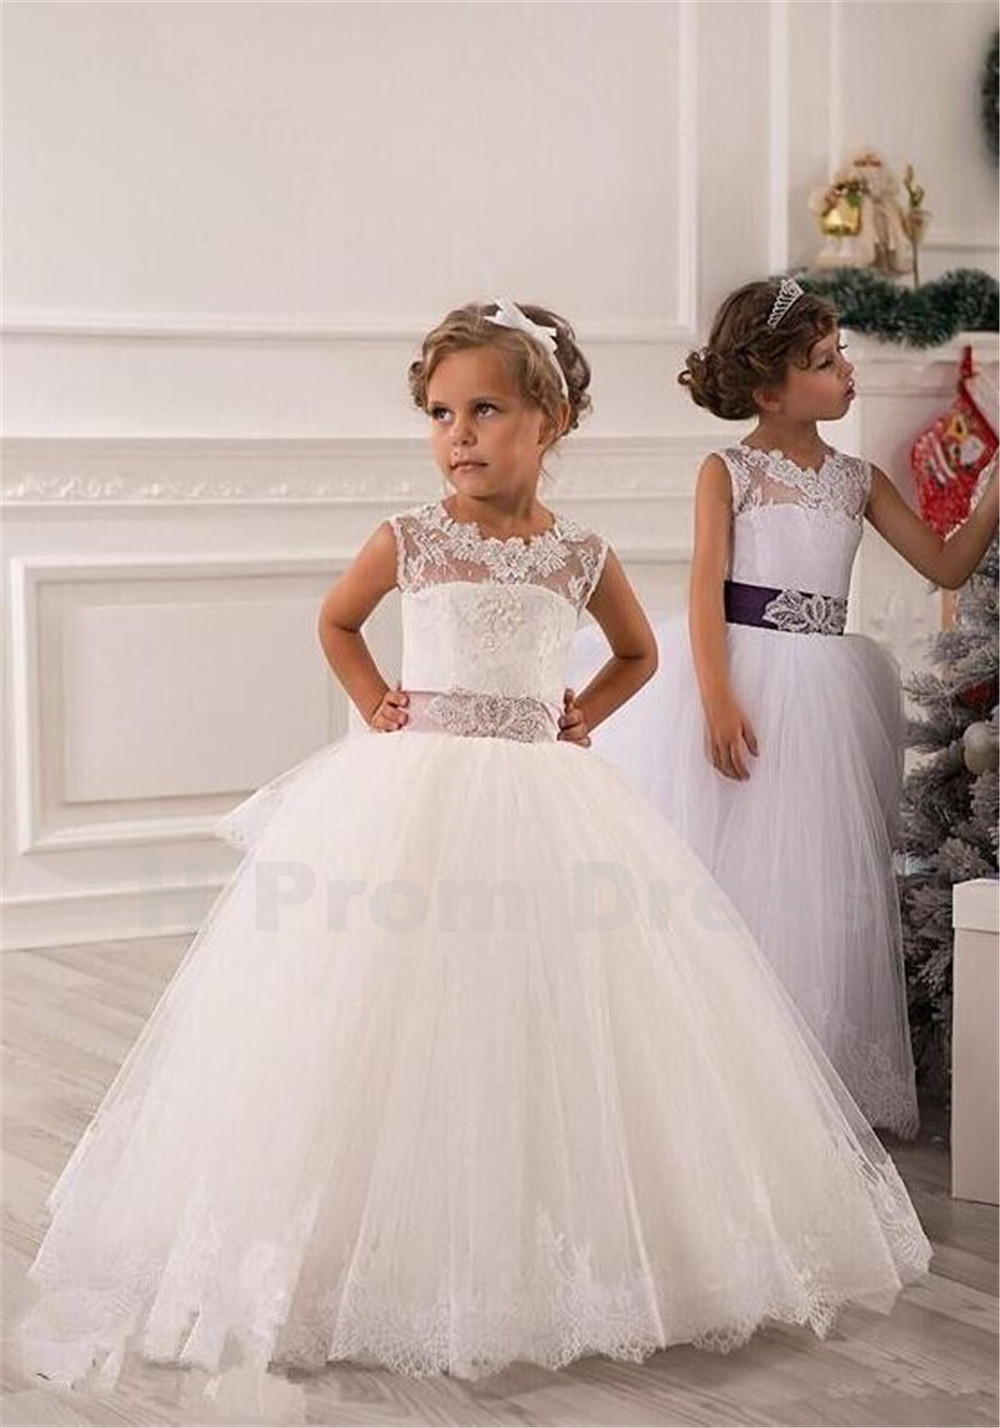 Flower girl dressflower girl dresseschildren party dressgirl flower girl dressflower girl dresseschildren party dressgirl dresskids izmirmasajfo